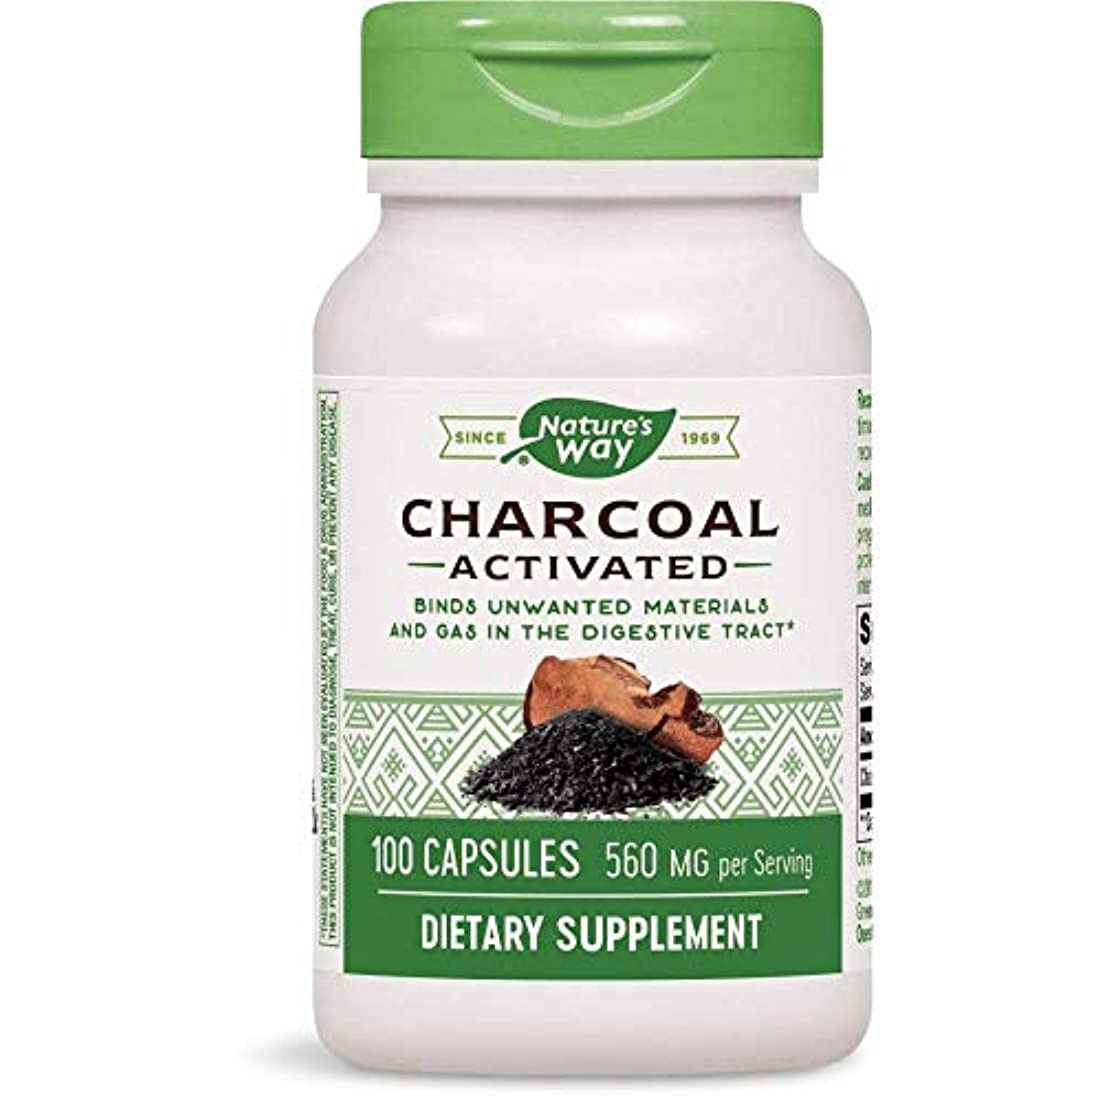 考えるフォーカス金属海外直送品Nature's Way Charcoal, Activated, 100 Caps 260 MG(Pack of 3)